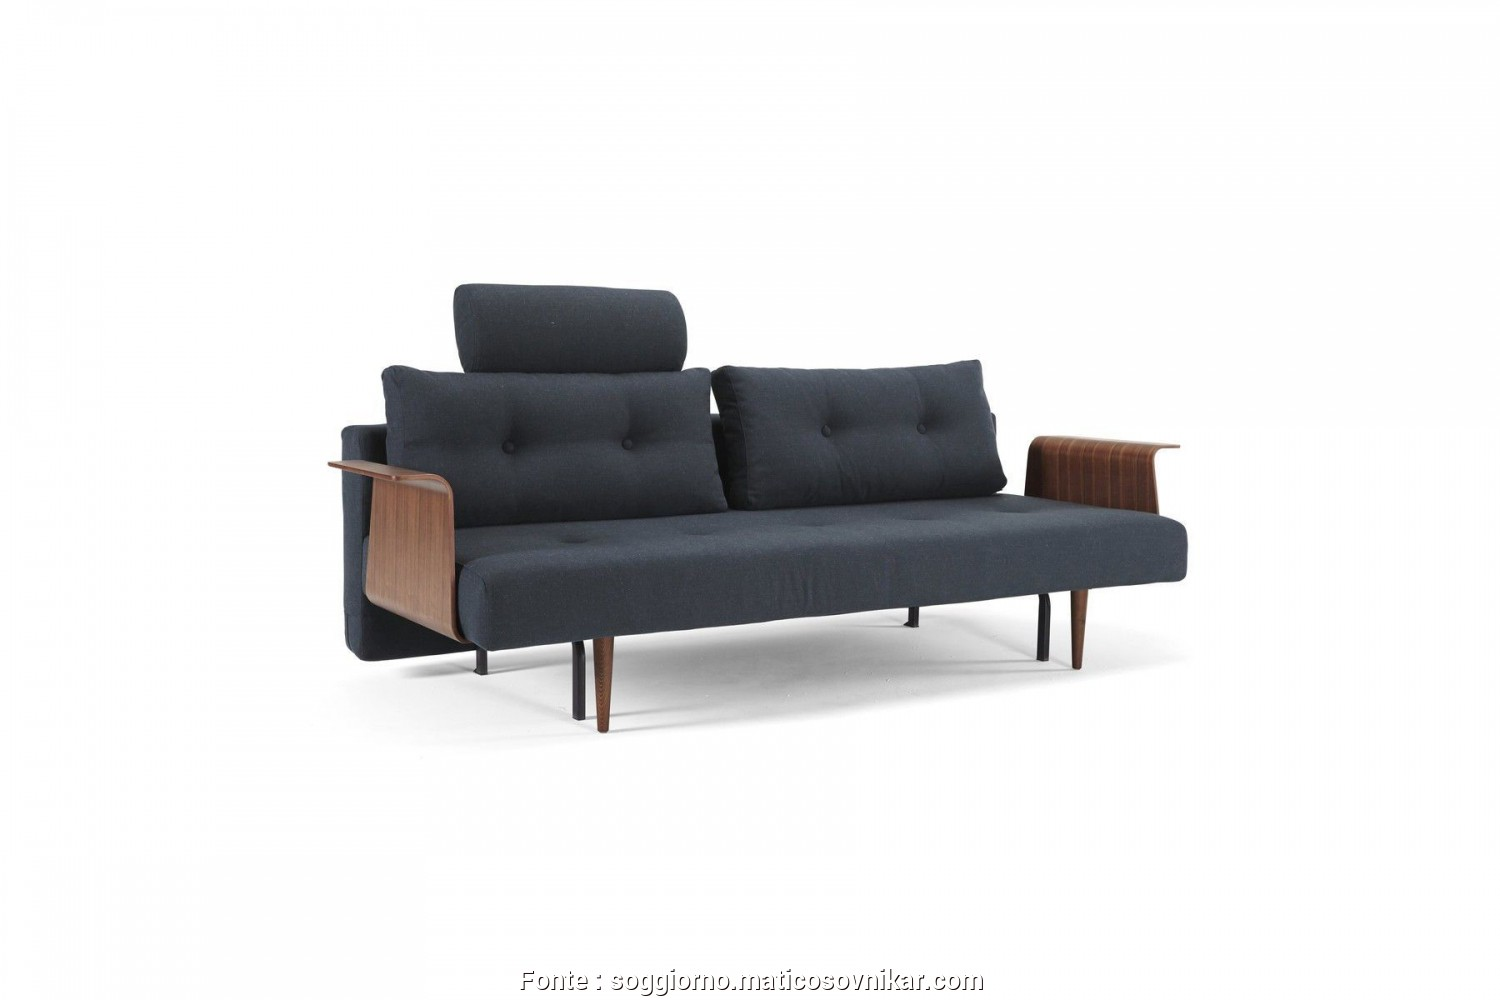 Divano Ikea Timsfors, Amabile Divano, Chaise Longue Ikea, Timsfors, Seat Sofa With Chaise